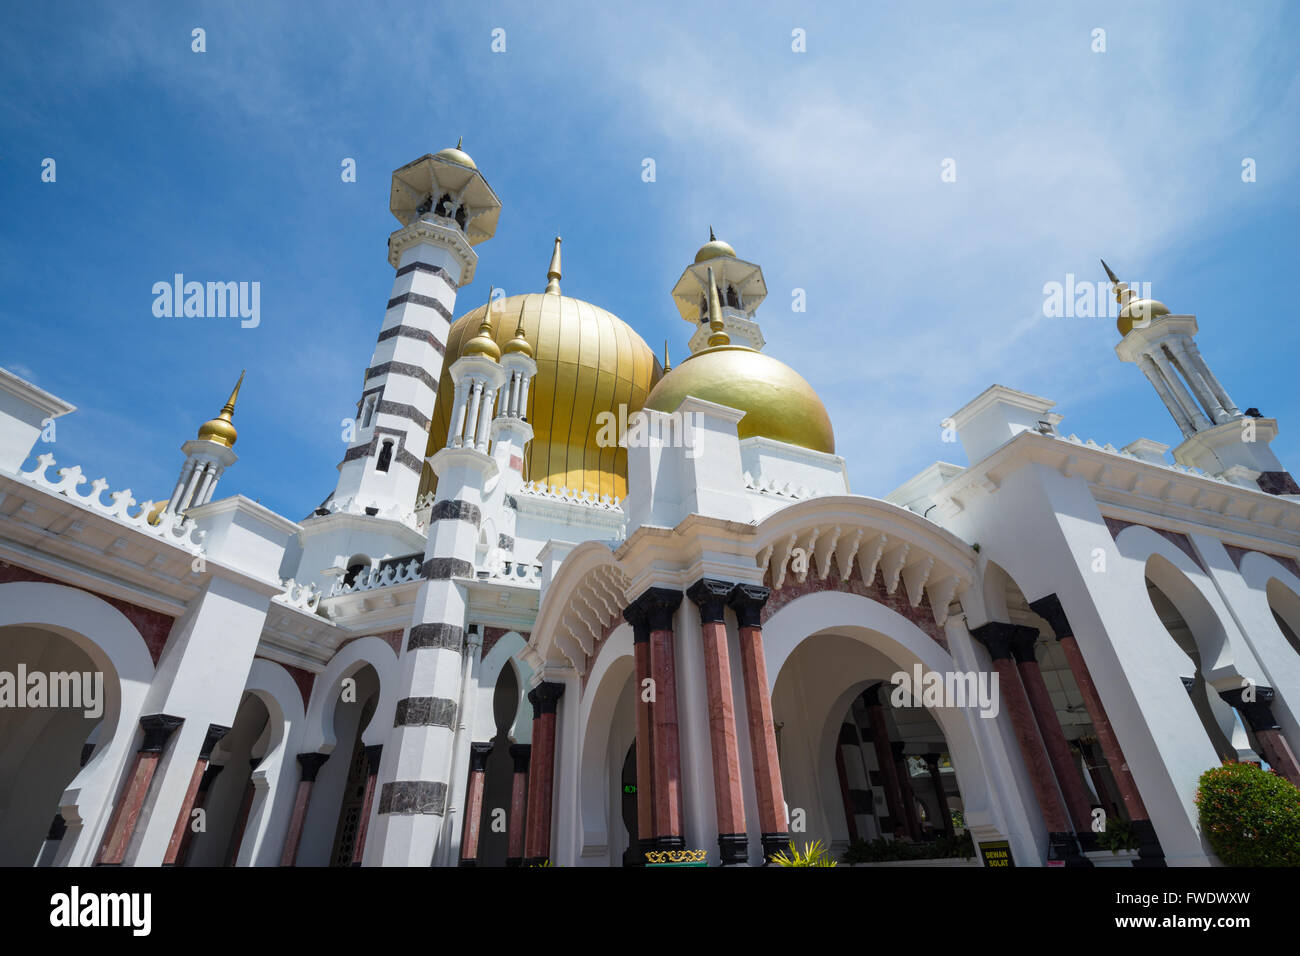 The Ubudiah Mosque is Perak's royal mosque, and is located in the royal town of Kuala Kangsar, Perak, Malaysia. - Stock Image